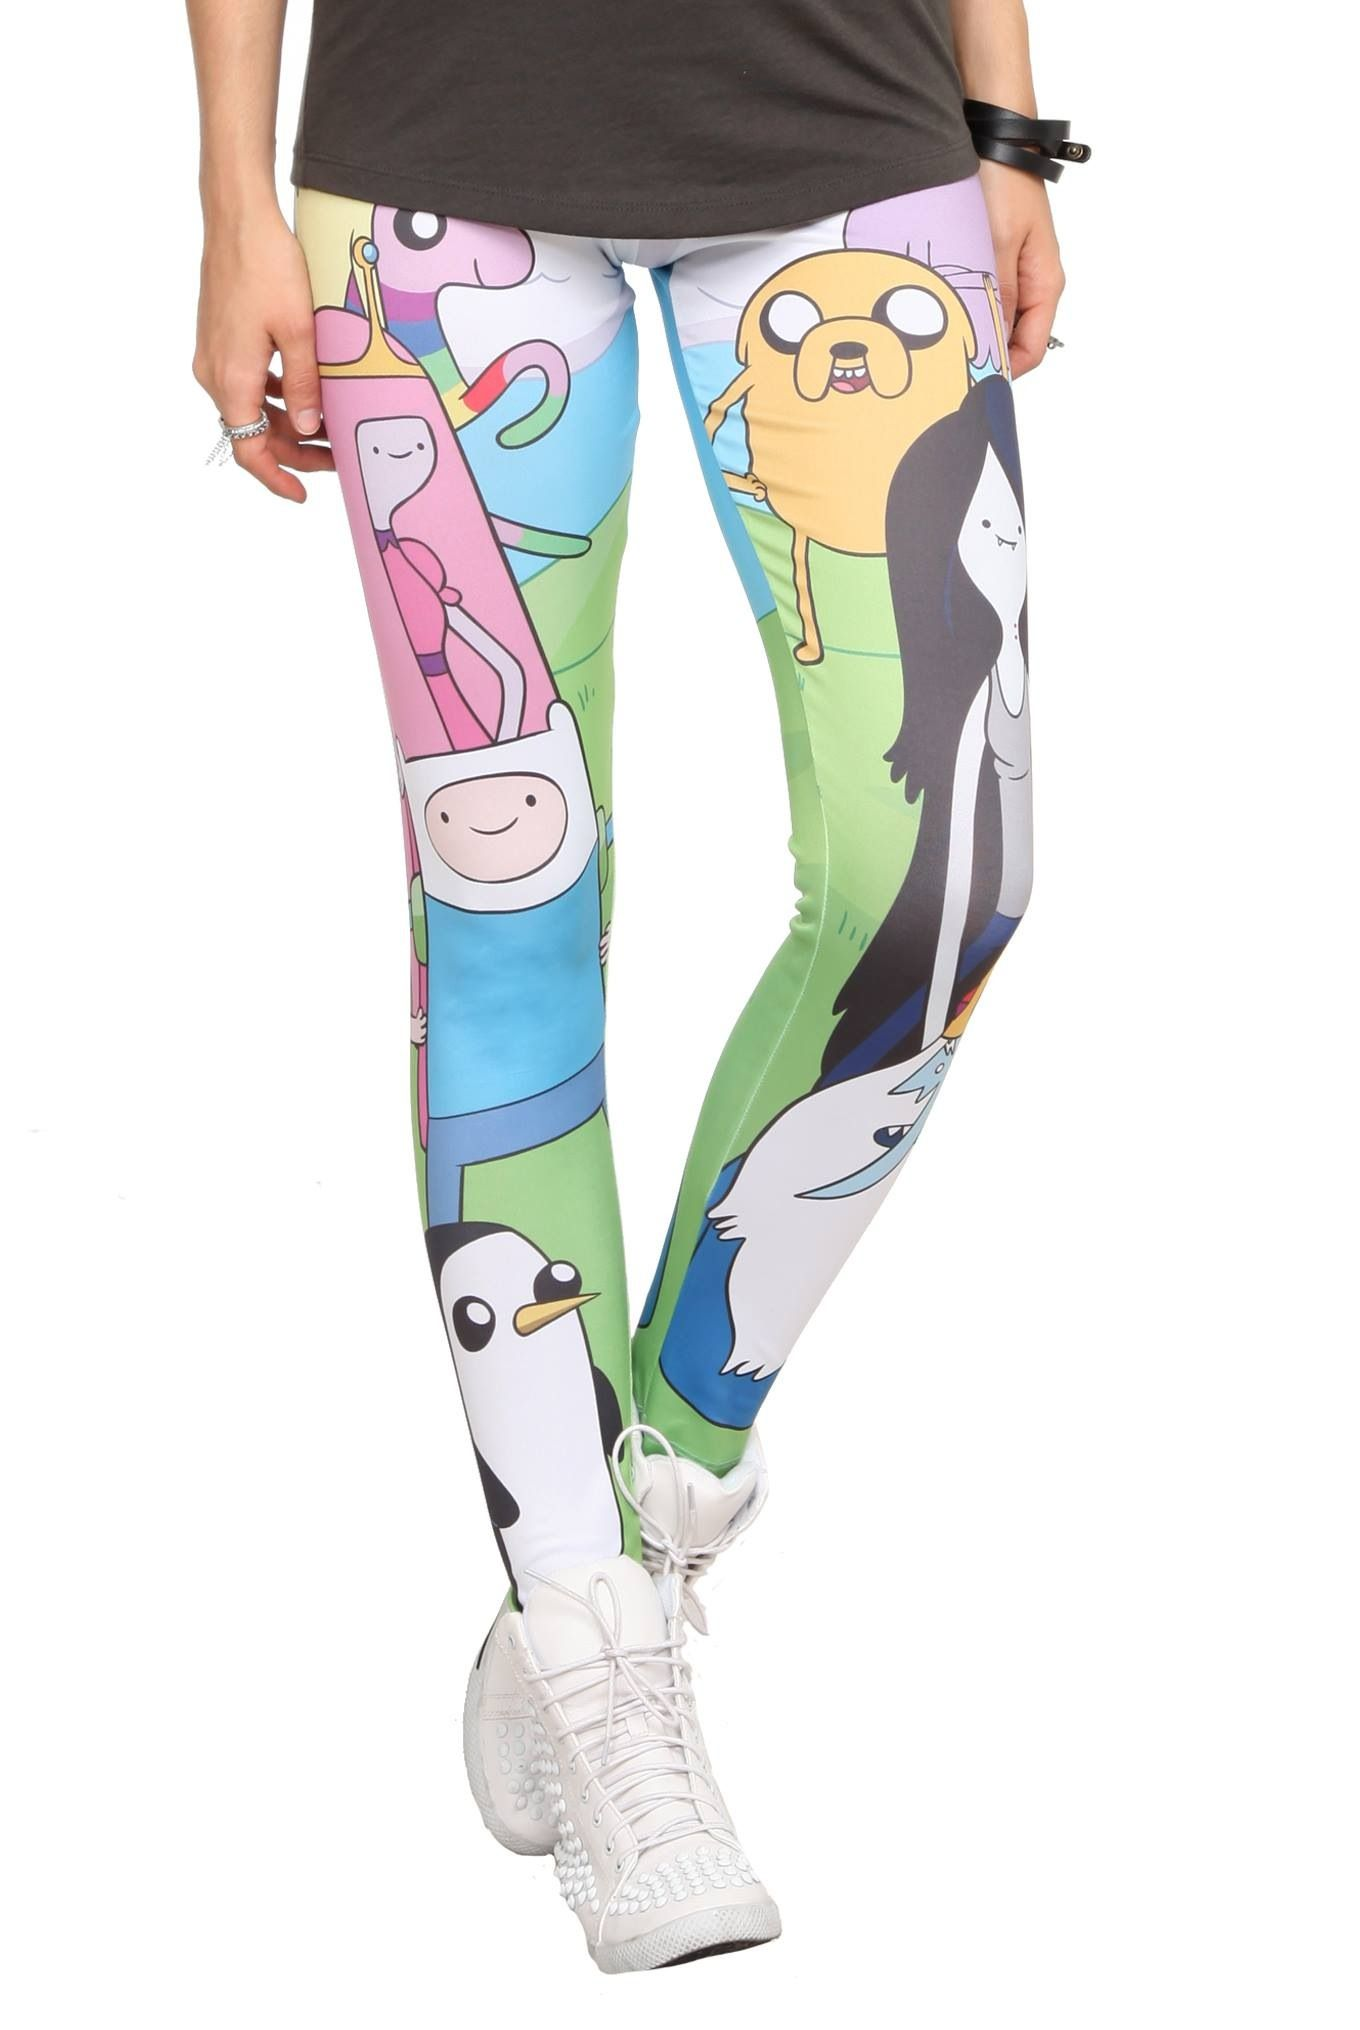 Adventure Time skinny jeans | Adventure Time | Pinterest | Awesome ...